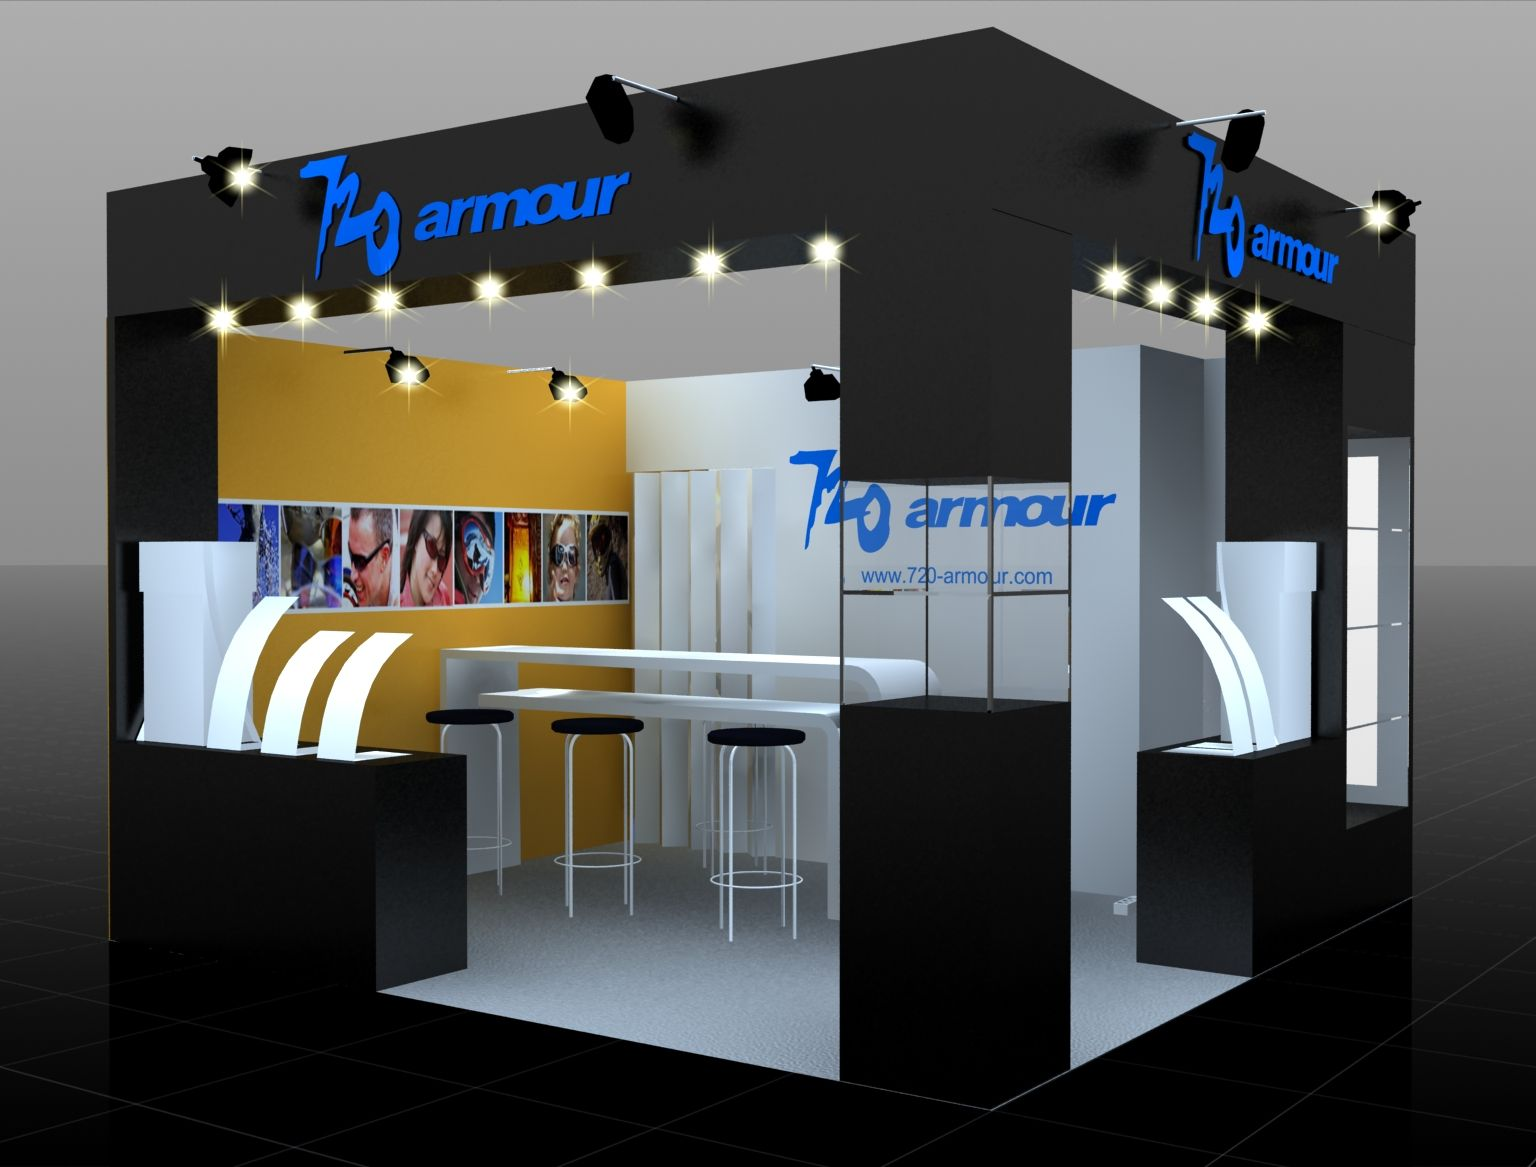 trade show booth layout design trade show booth image search results - Photo Booth Design Ideas